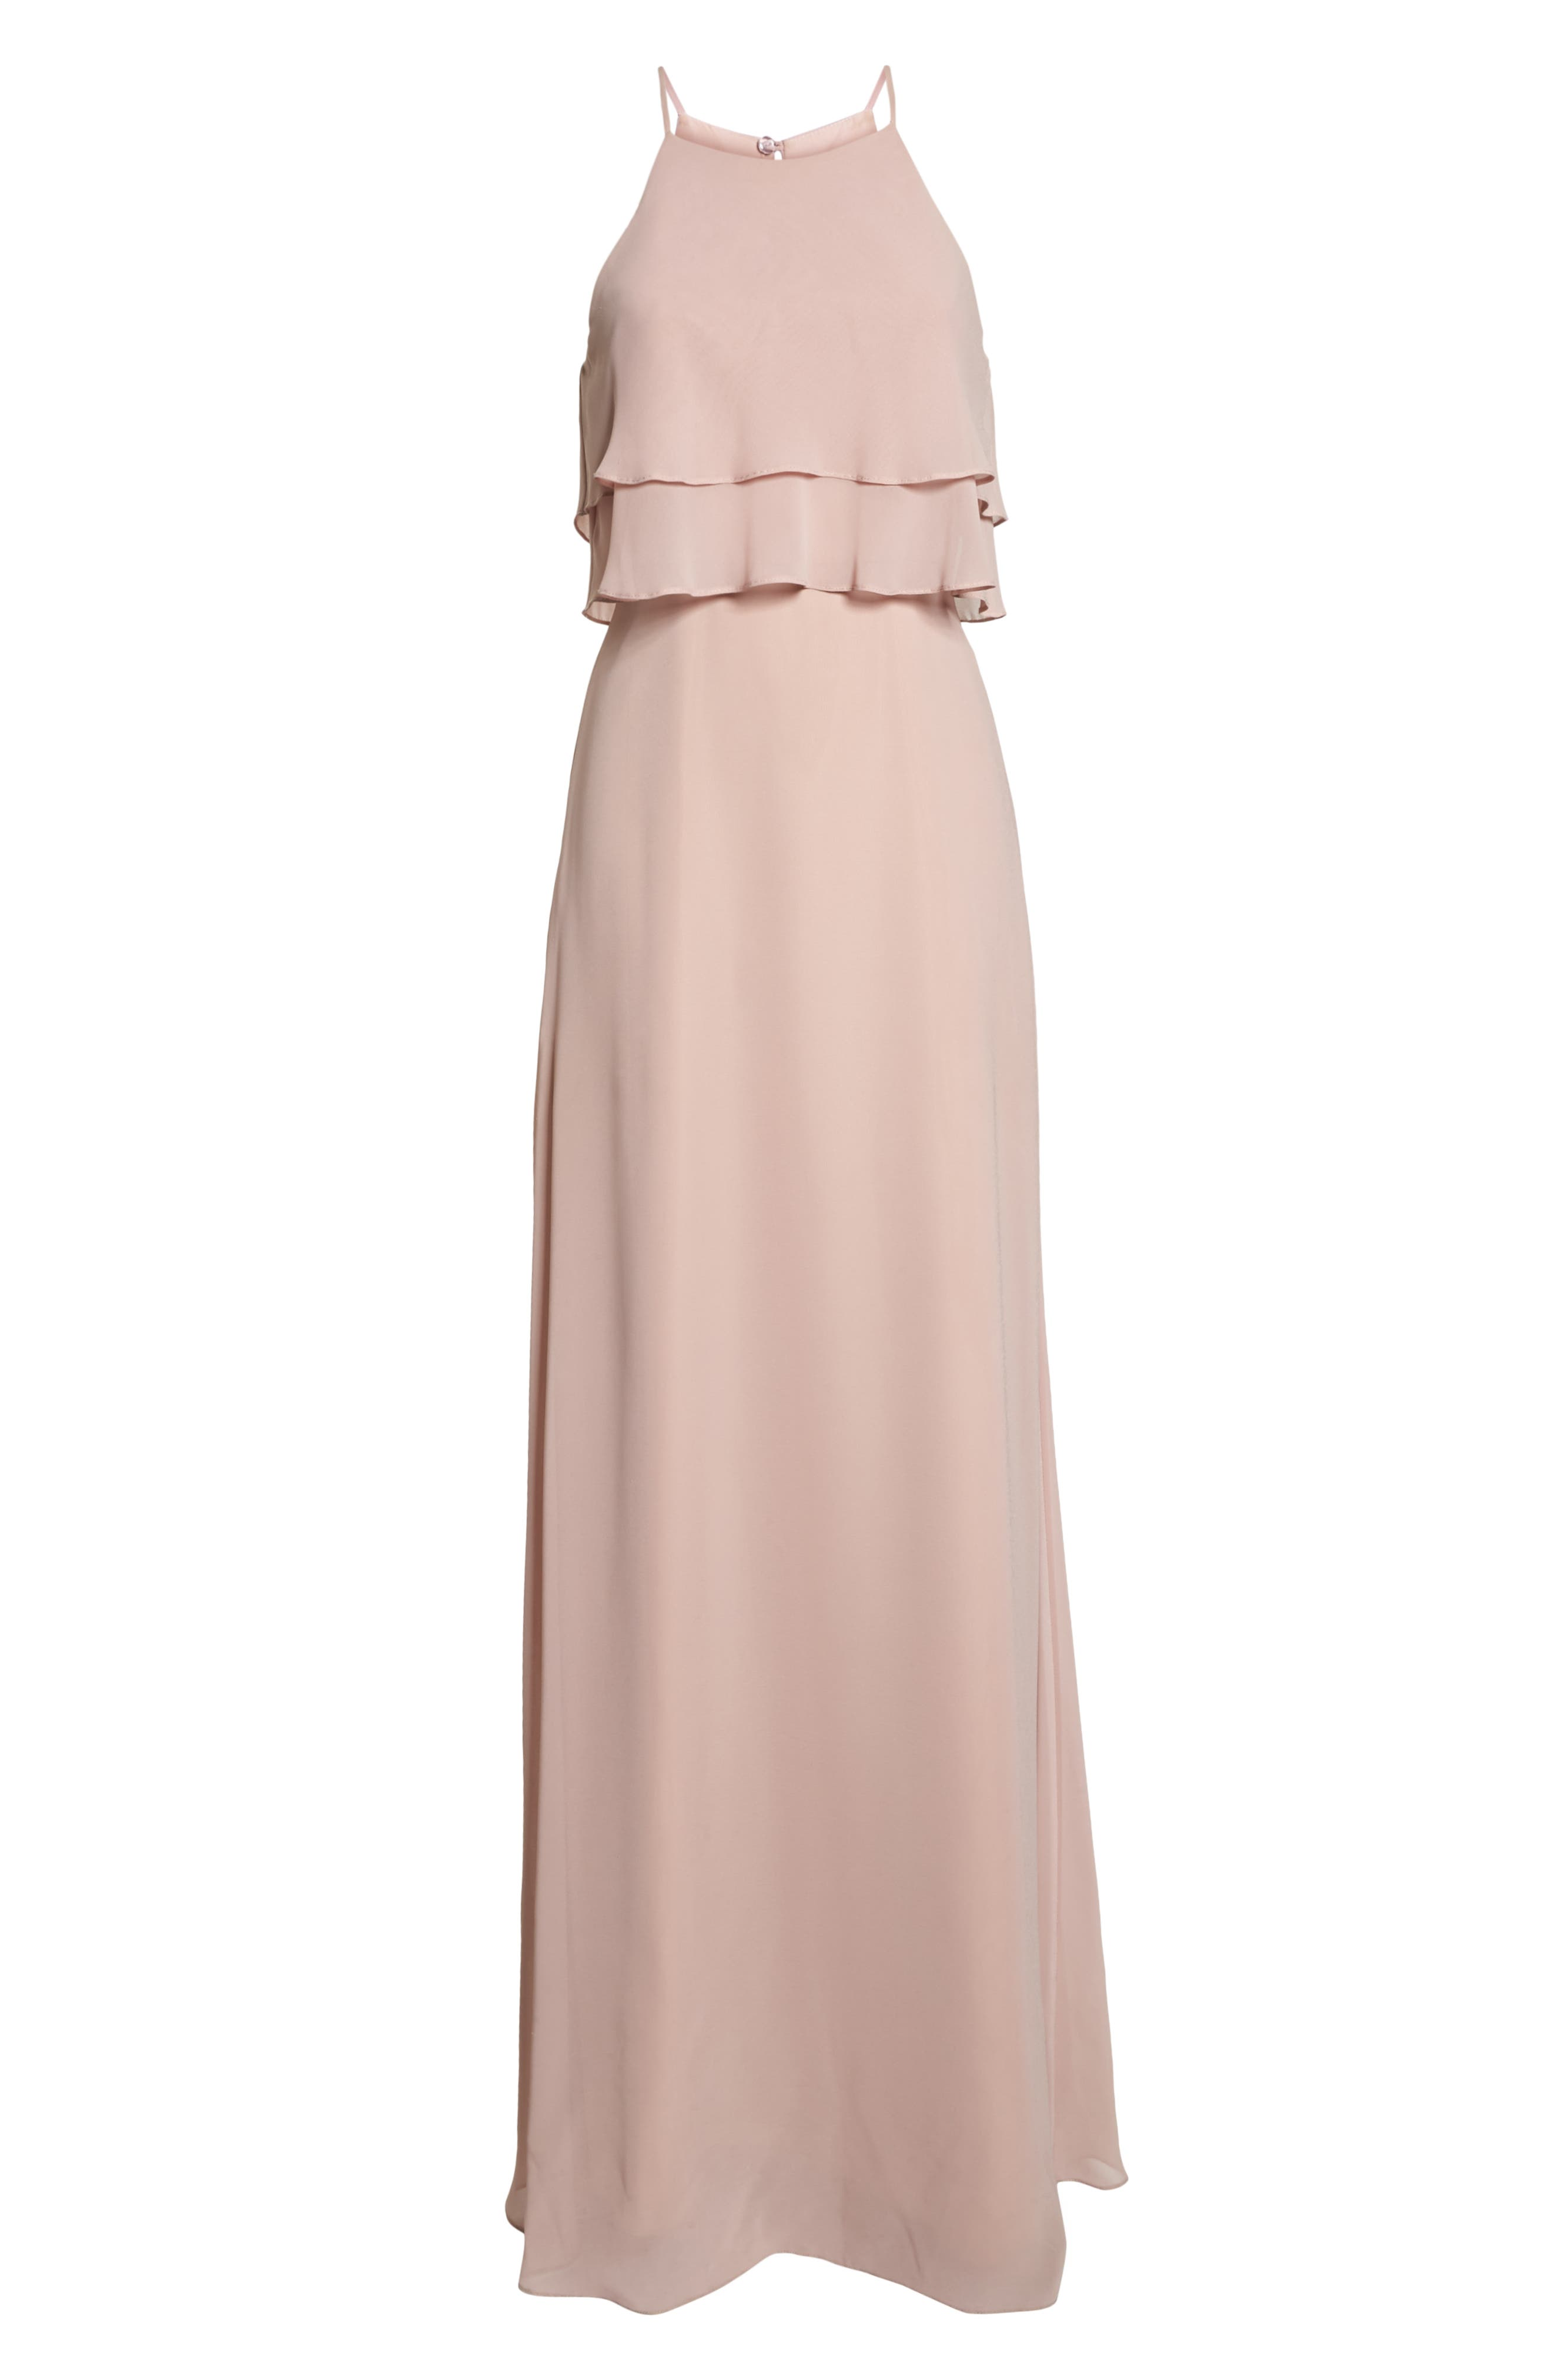 Charlie Ruffle Chiffon Gown,                             Alternate thumbnail 7, color,                             WHIPPED APRICOT